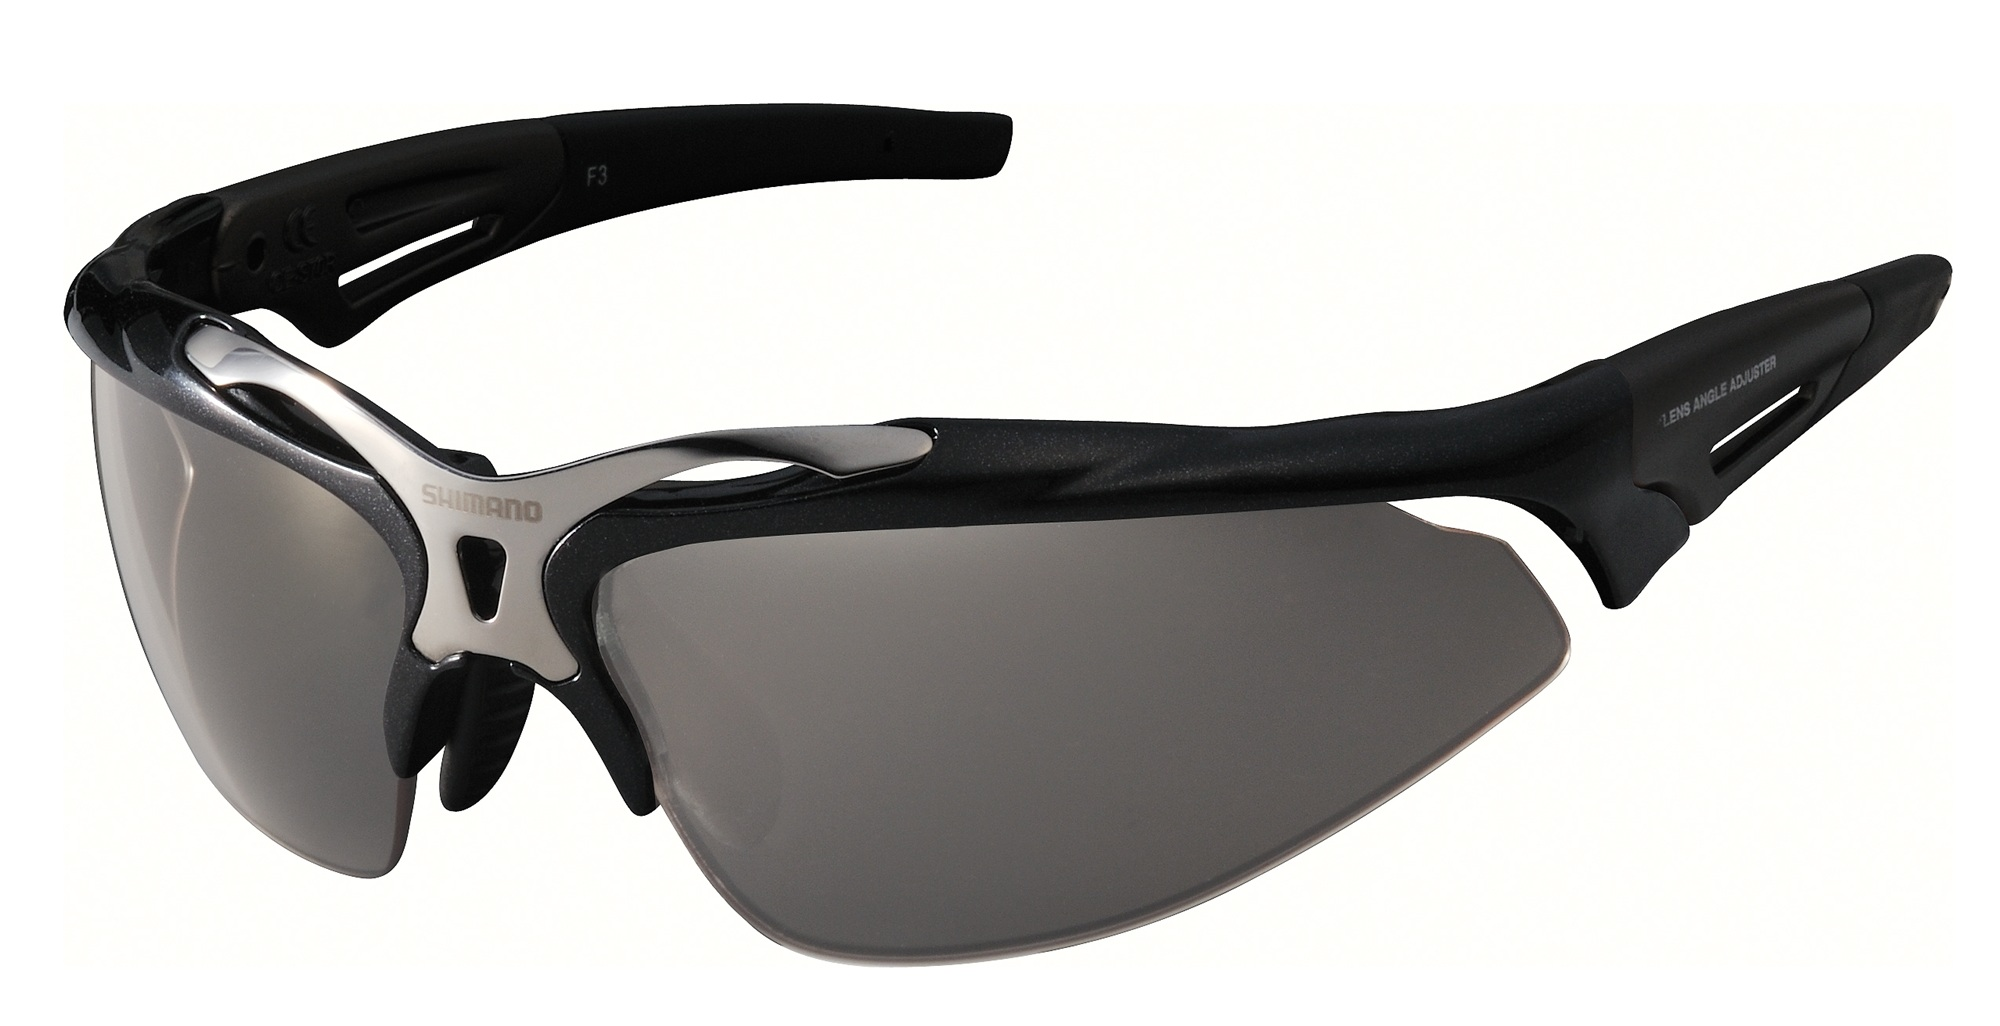 Ochelari Shimano S70R – PH Black Metallic